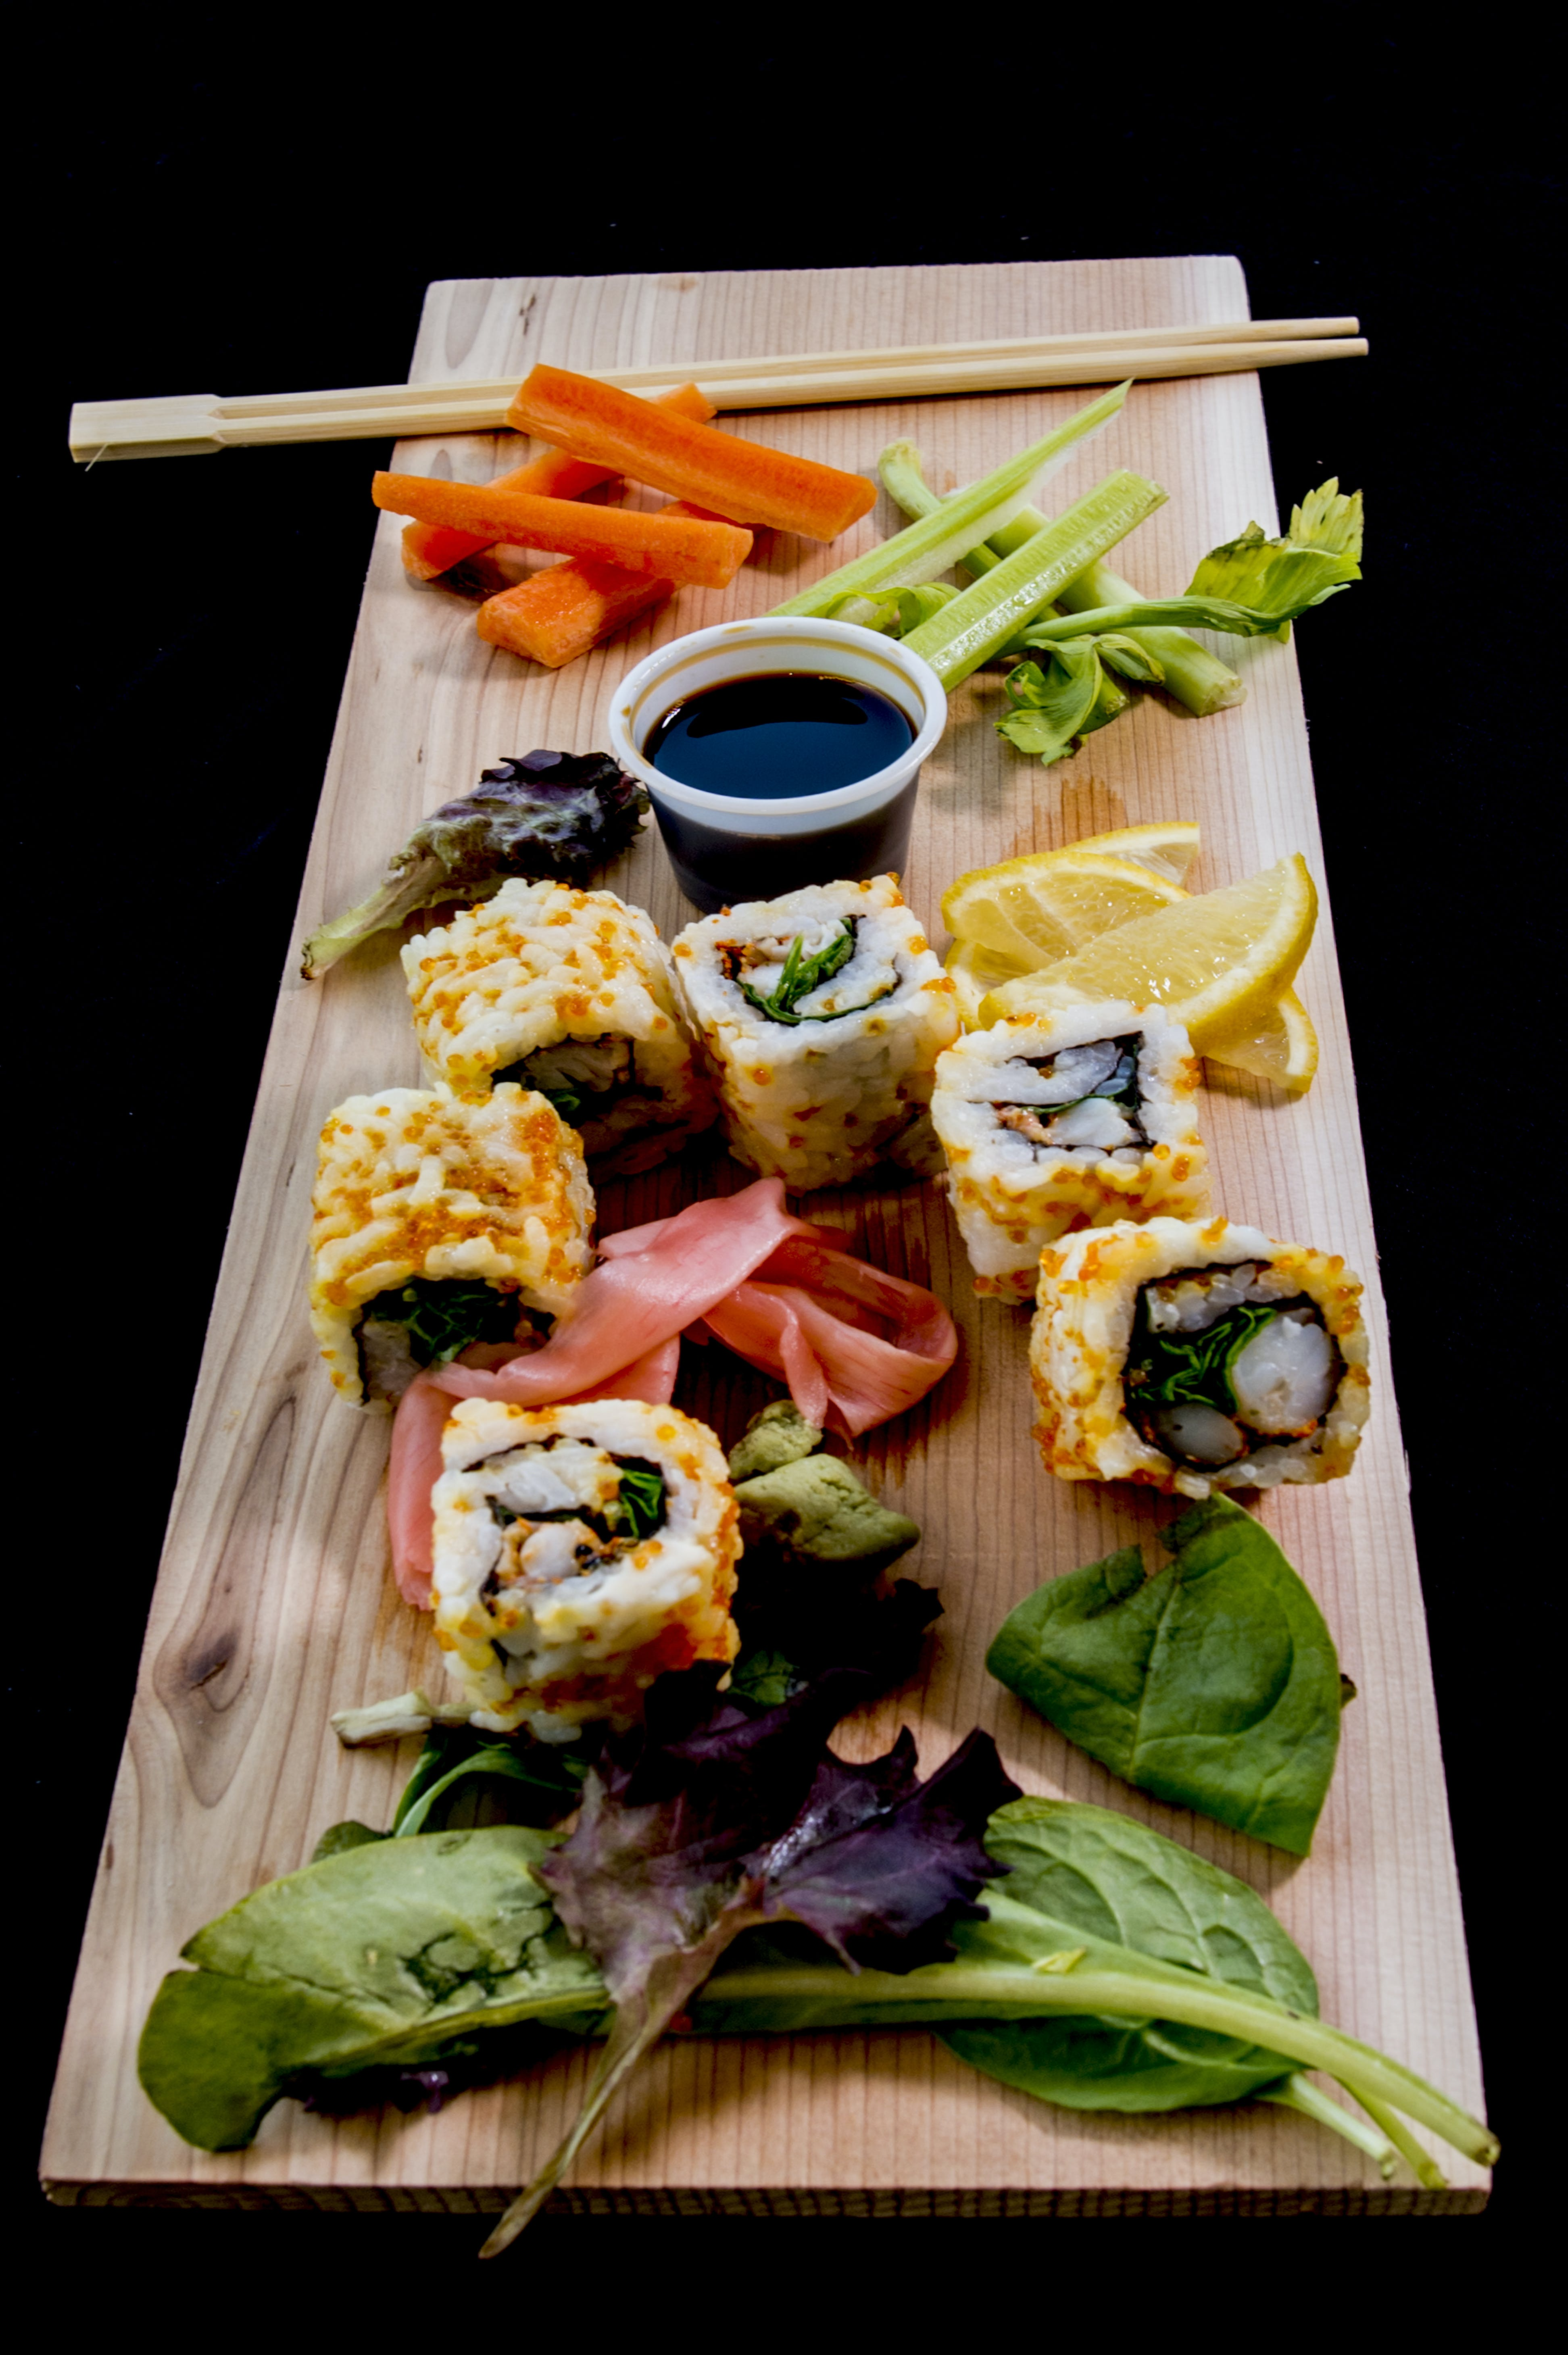 Variety of Foods With Chopsticks